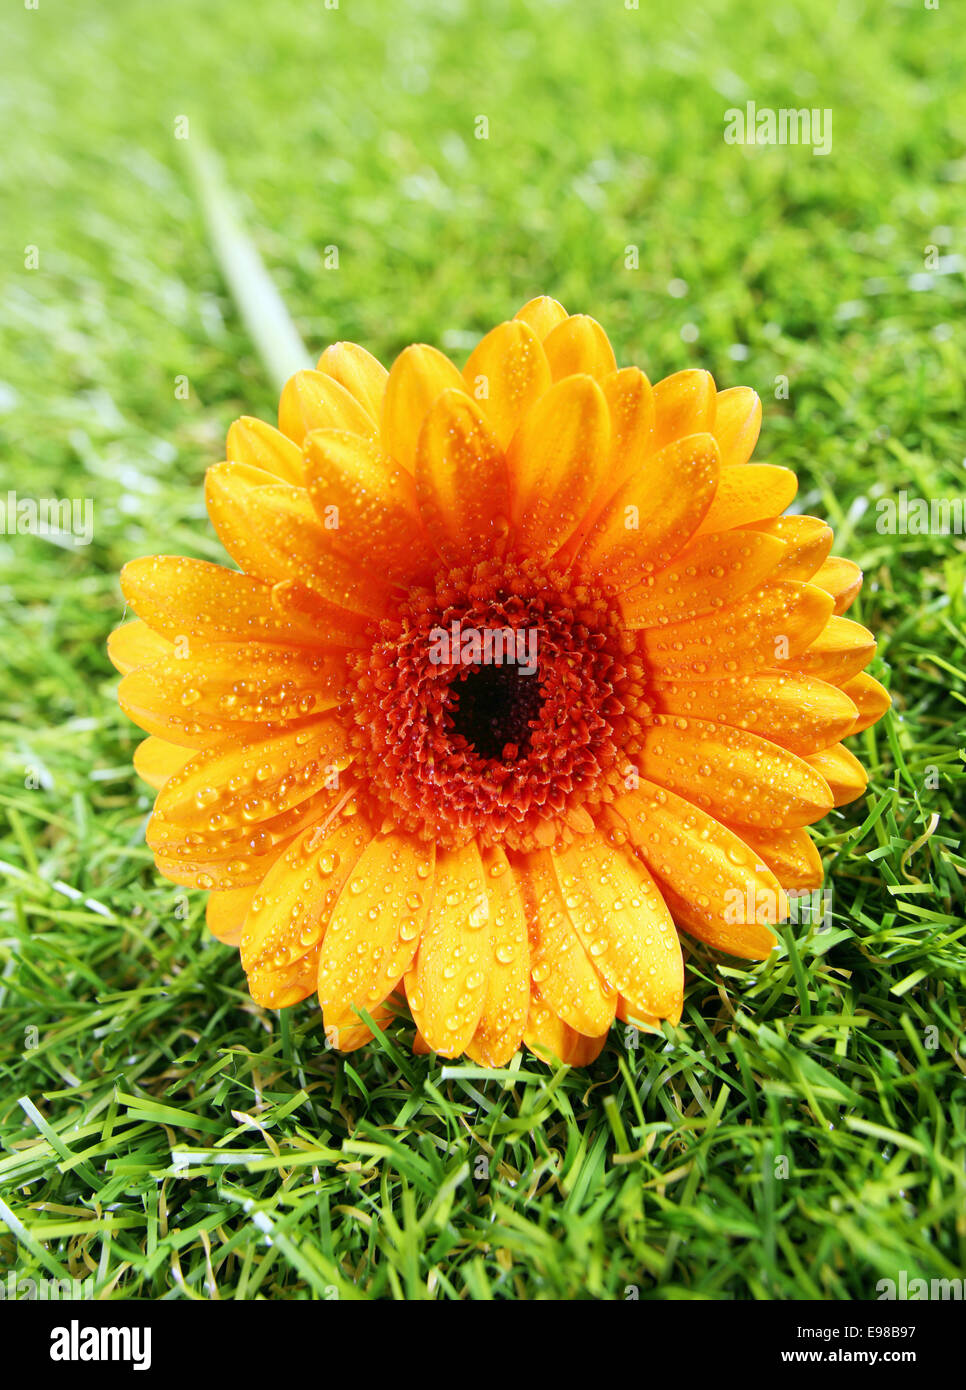 Vibrant yellow gerbera diasy with raindrops of dewdrops glistening on the petals lying on a green summer lawn, closeup - Stock Image